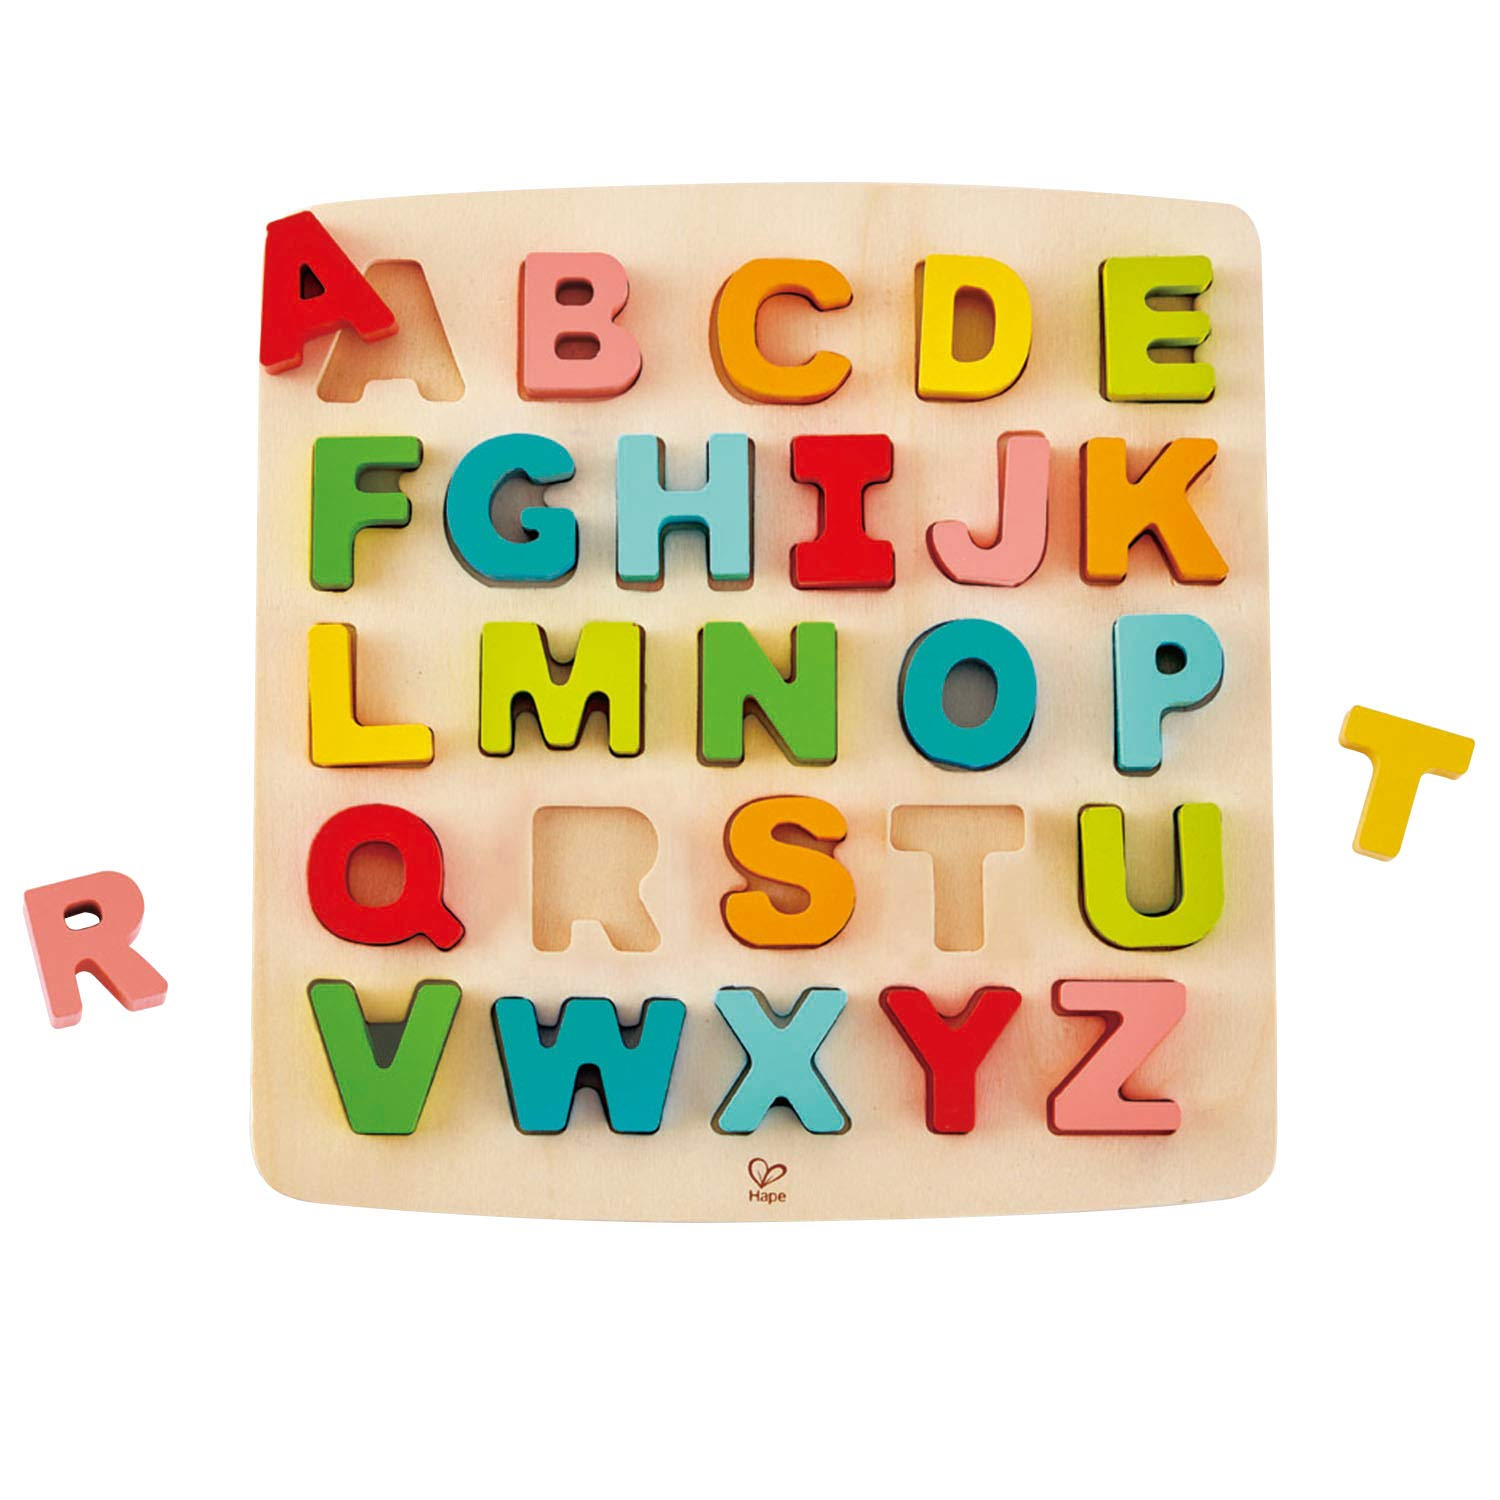 Hape Alphabet Blocks Learning Puzzle   Wooden ABC Letters Colorful Educational Puzzle Toy Board for Toddlers & Kids, Multi-Colored Jigsaw Blocks, 5'' x 2''